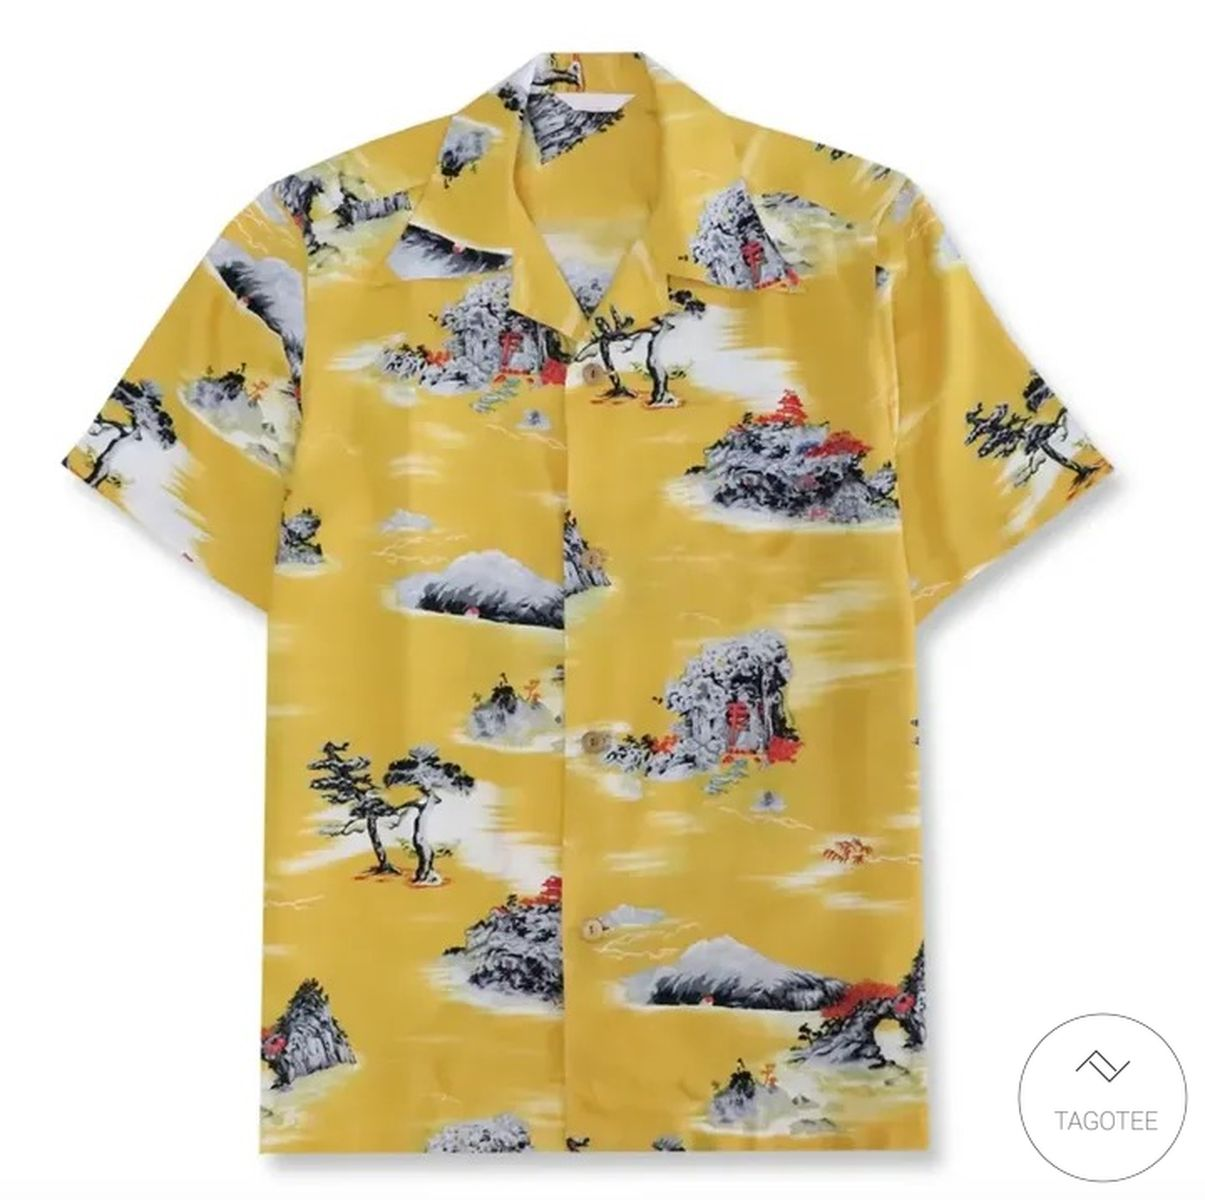 Brad Pitt Cliff Booth Once Upon a Time in Hollywood Hawaiian Shirt